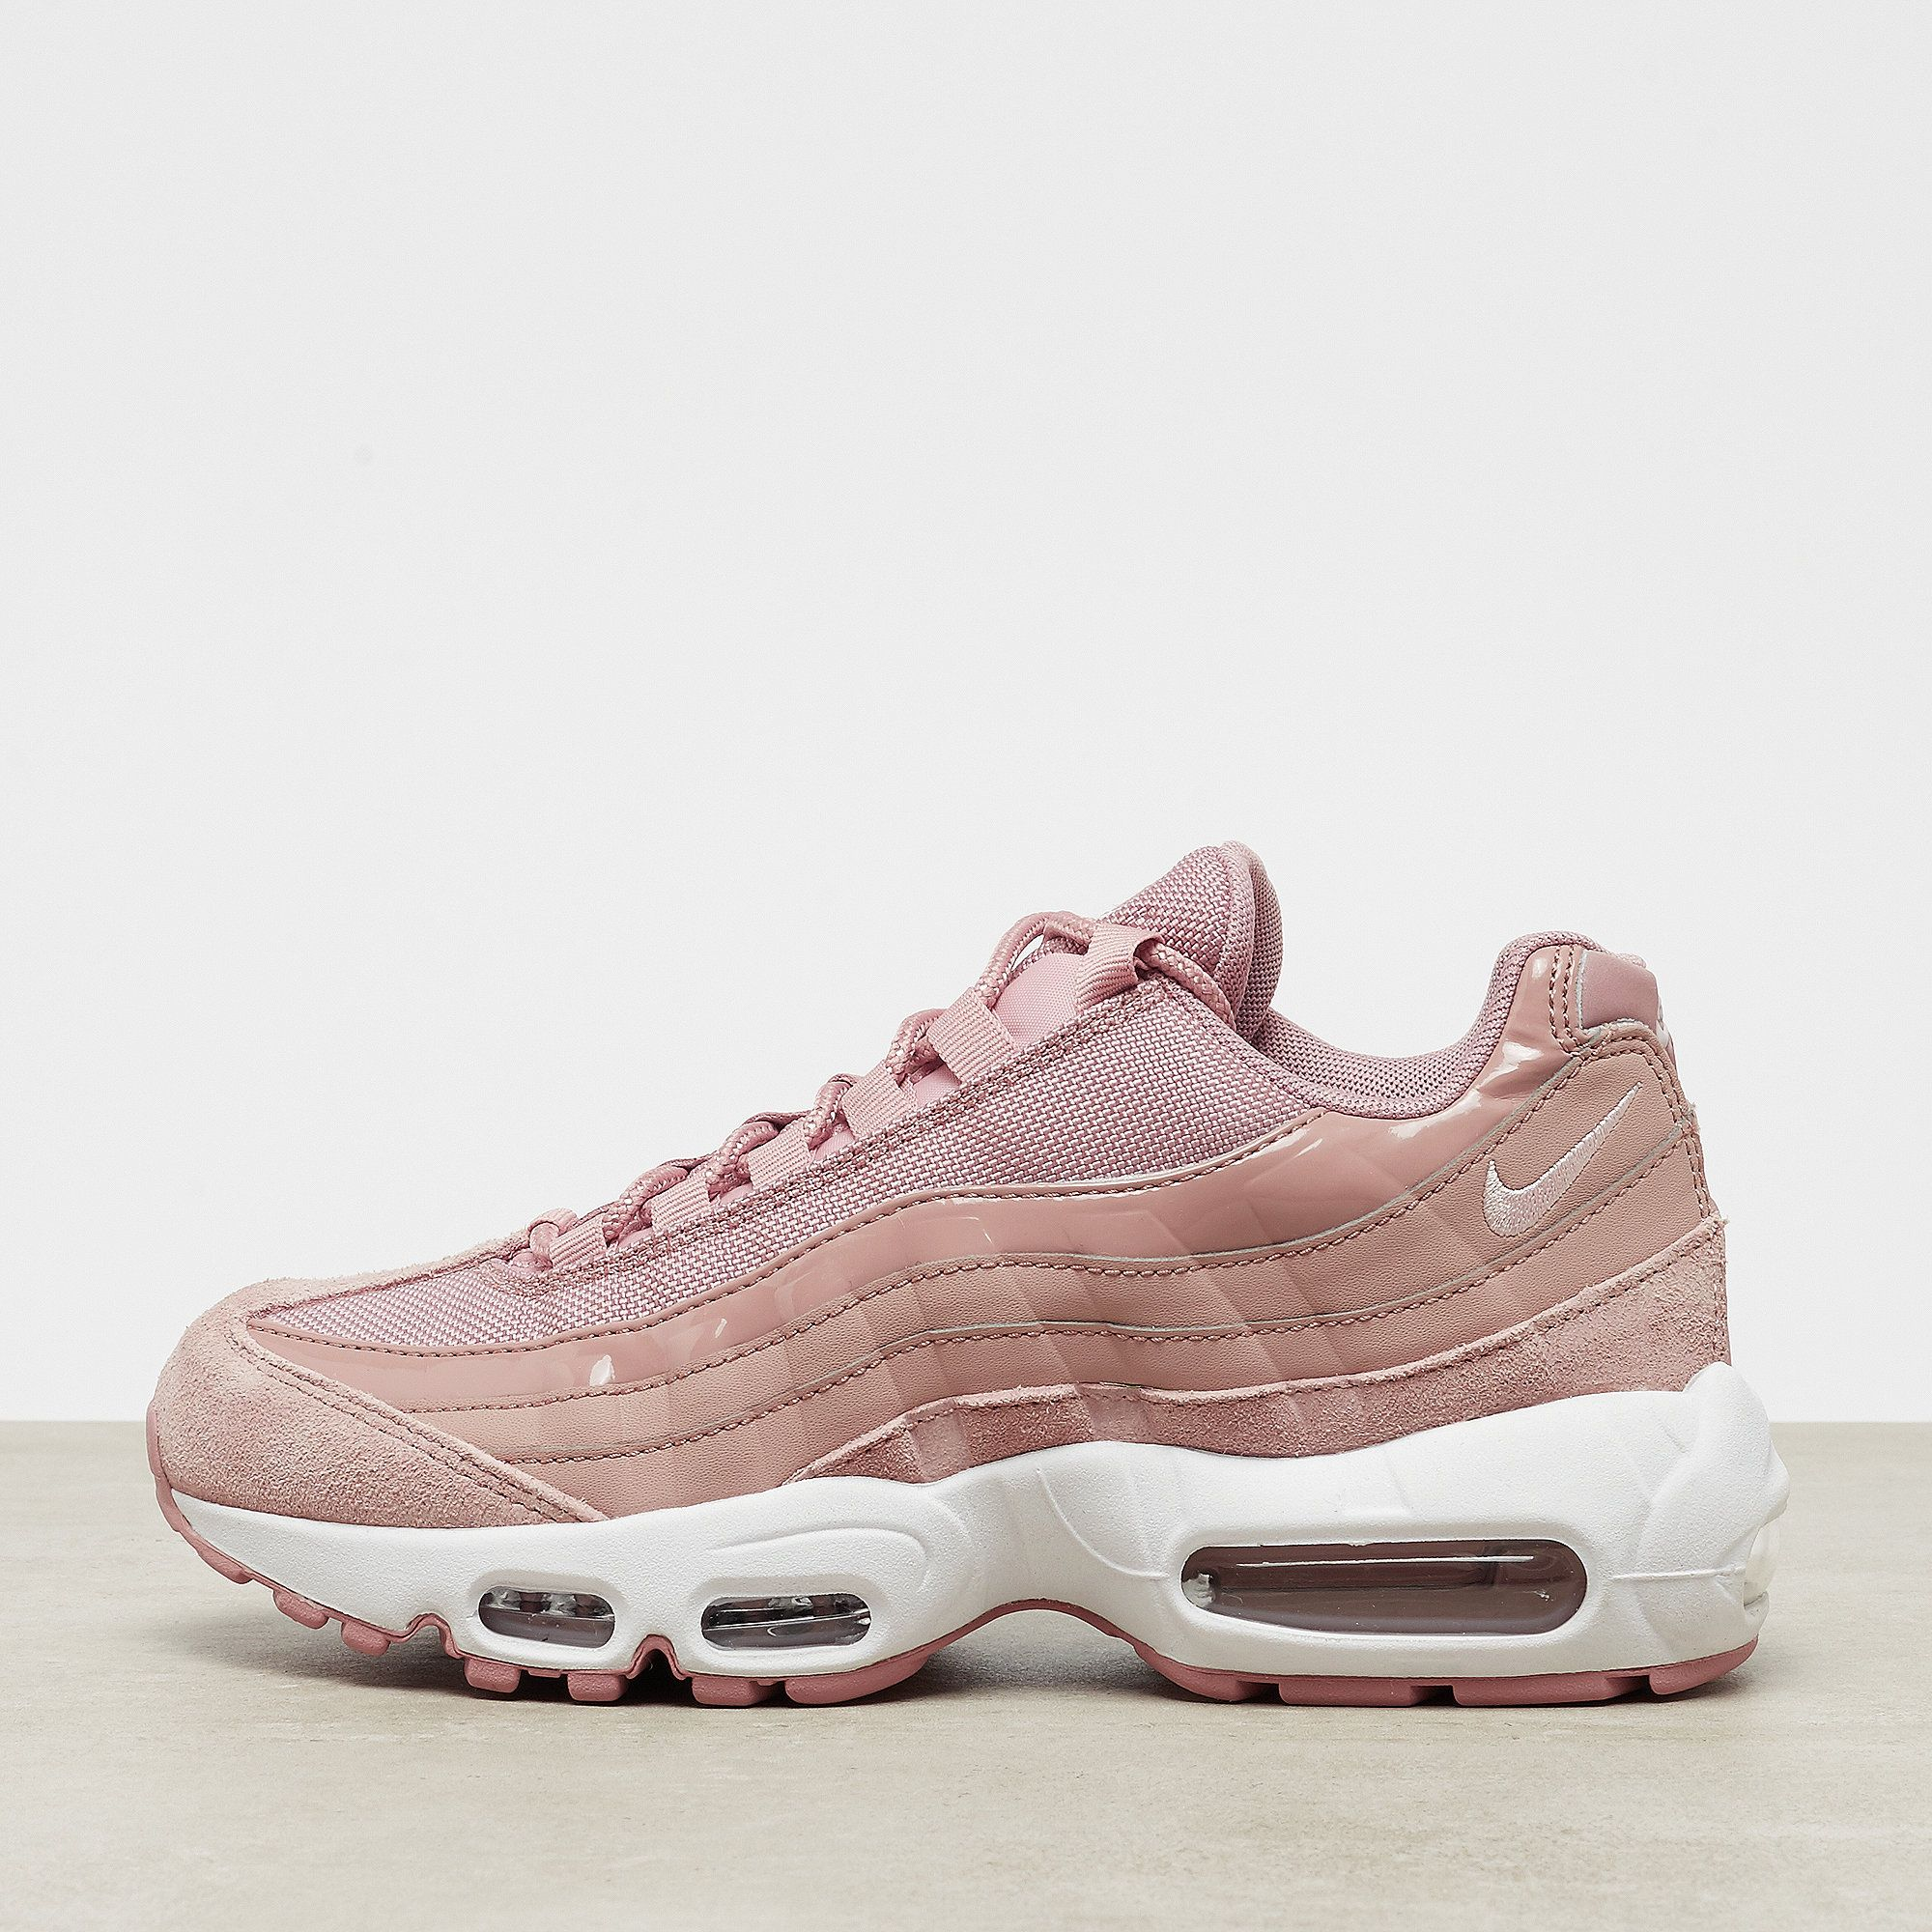 huge discount 2efc1 68e24 NIKE Air Max 95 particle pink silt red white